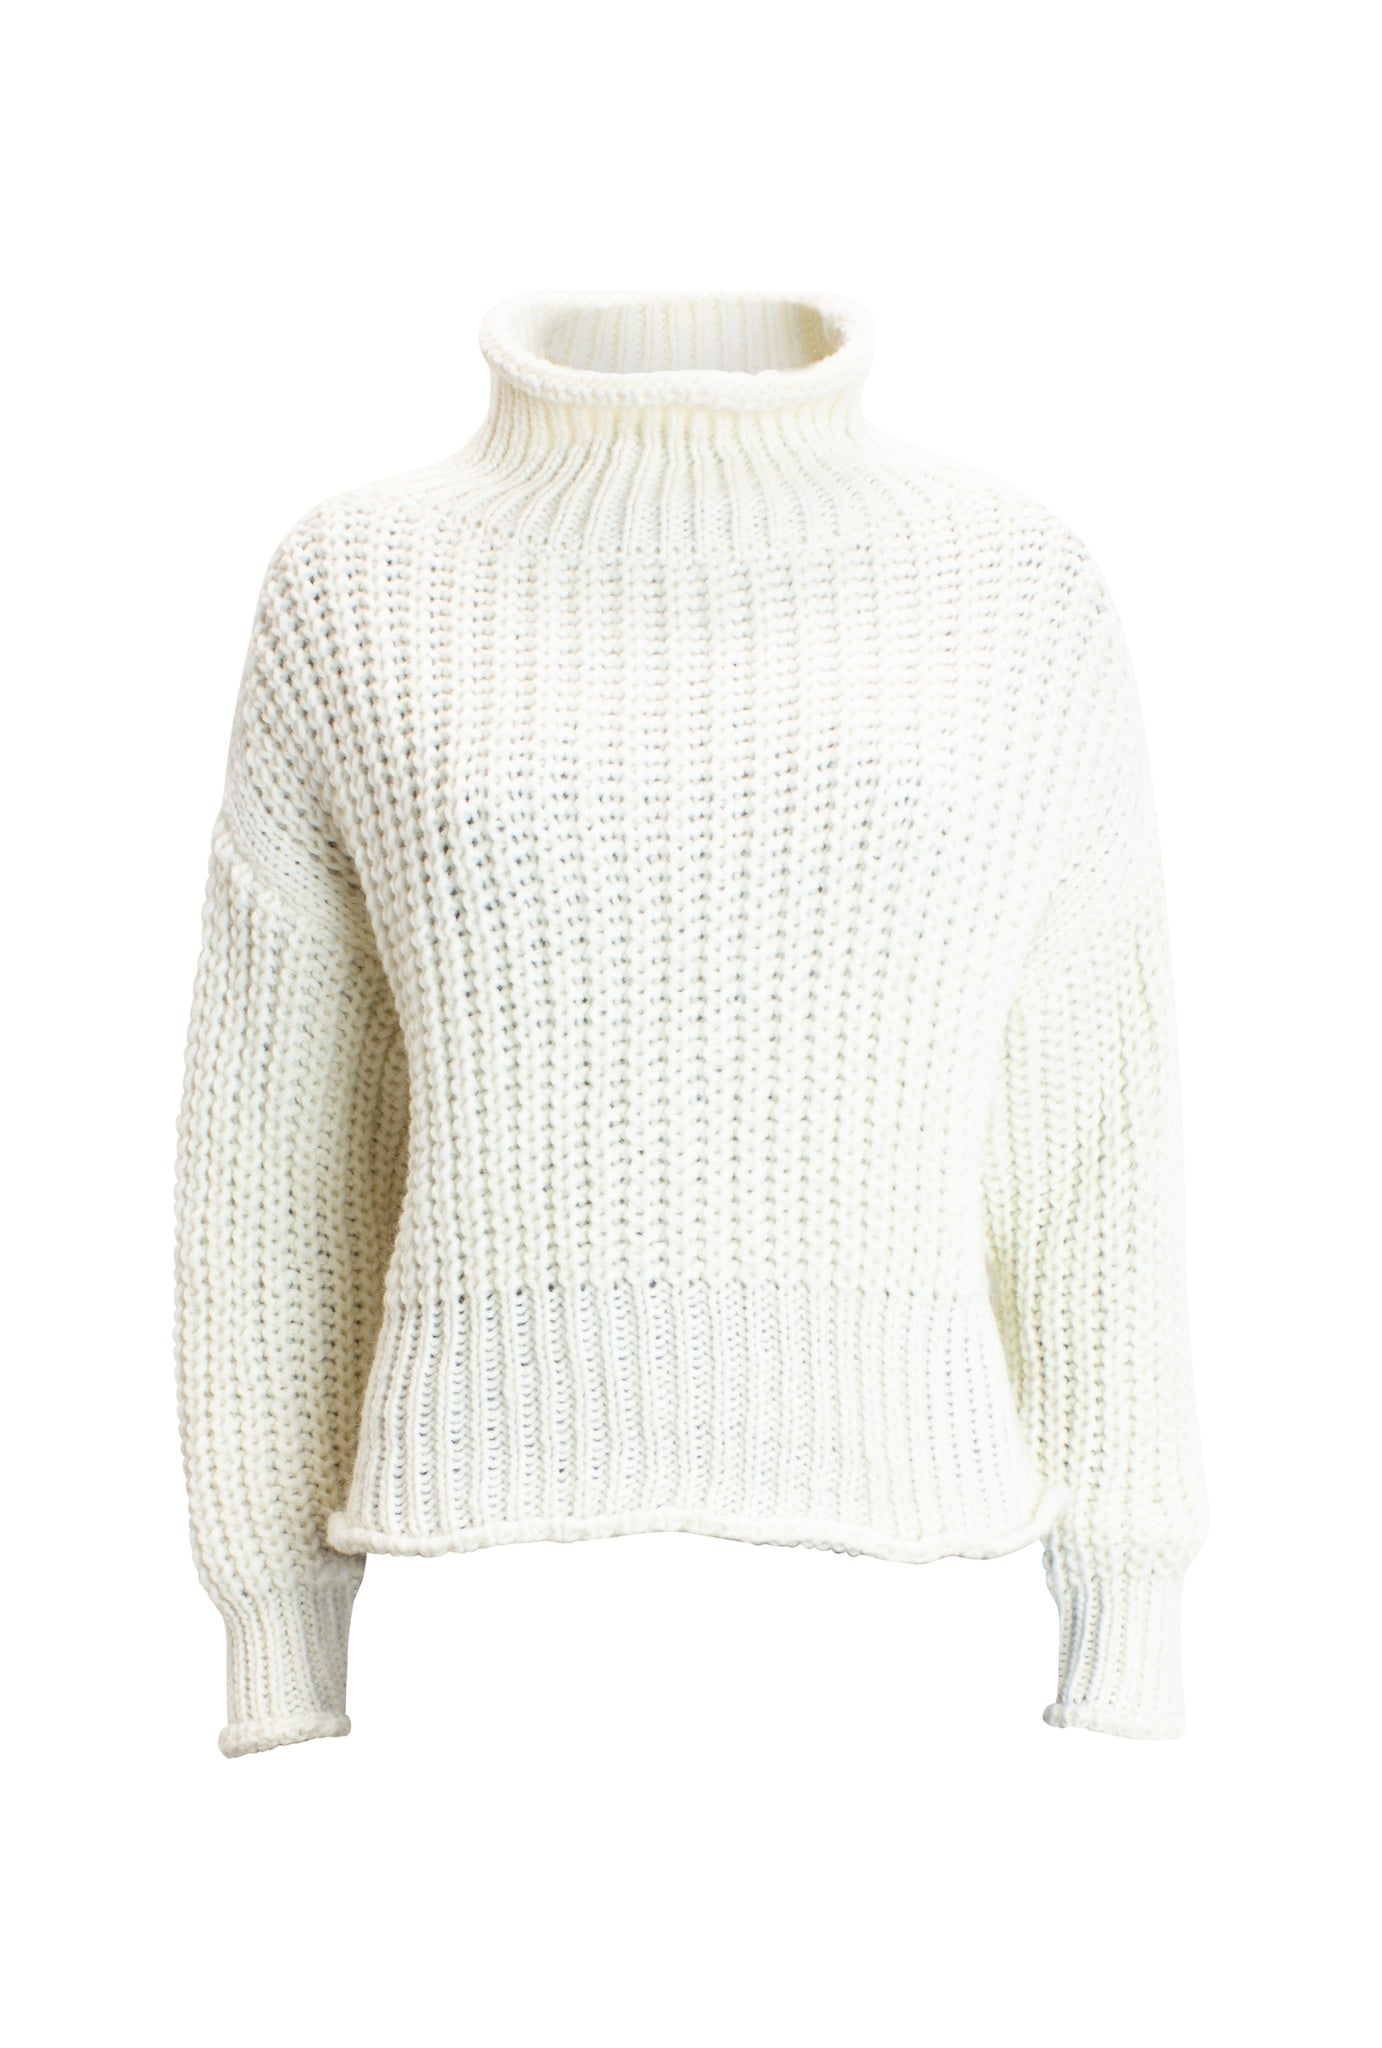 Stehkragenpullover One-Size in Patentstrick-Optik